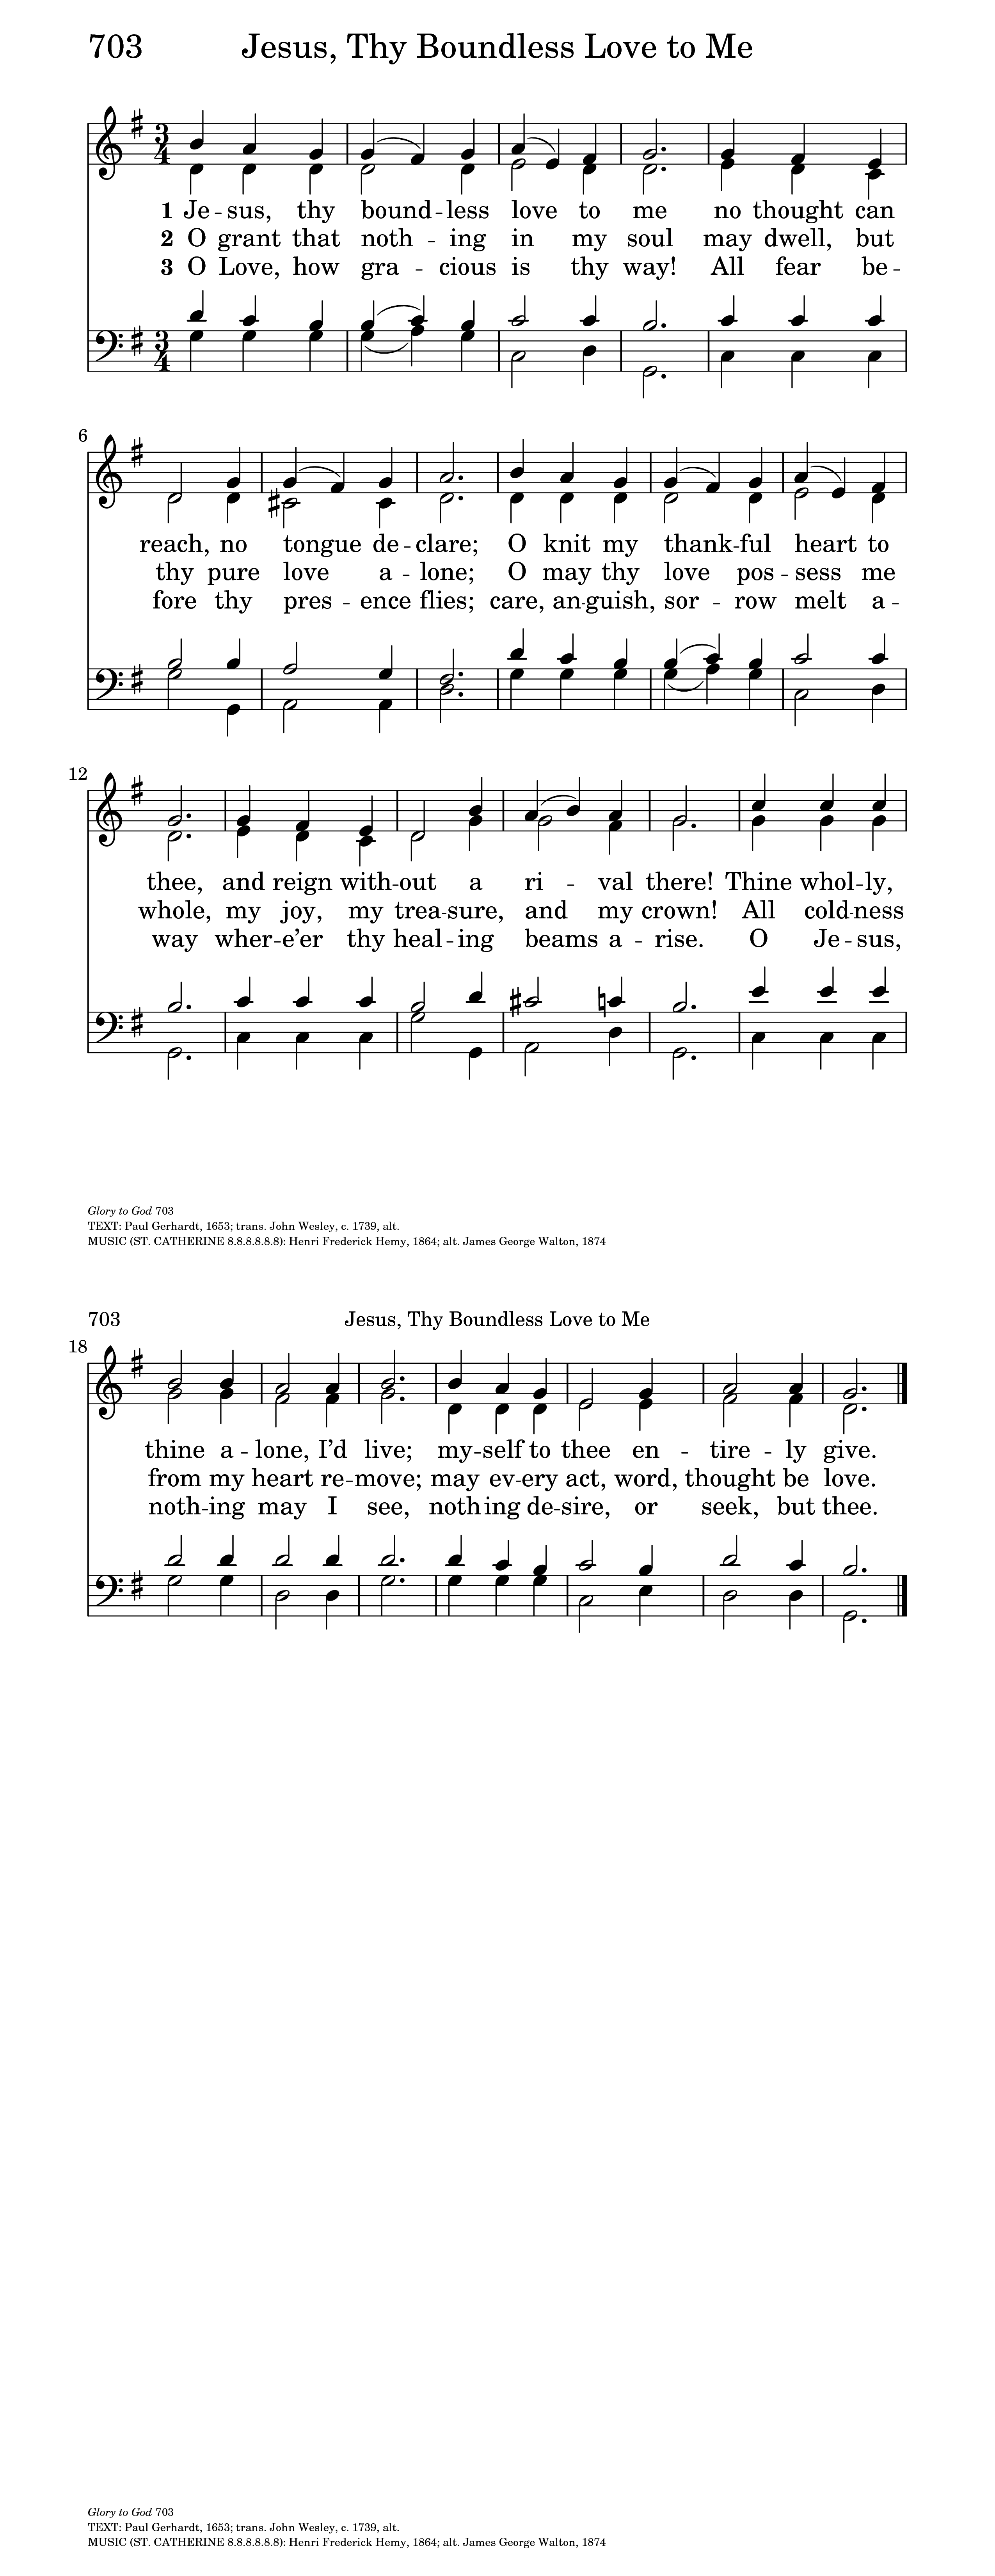 Jesus thy boundless love to me hymnary general settings hexwebz Image collections